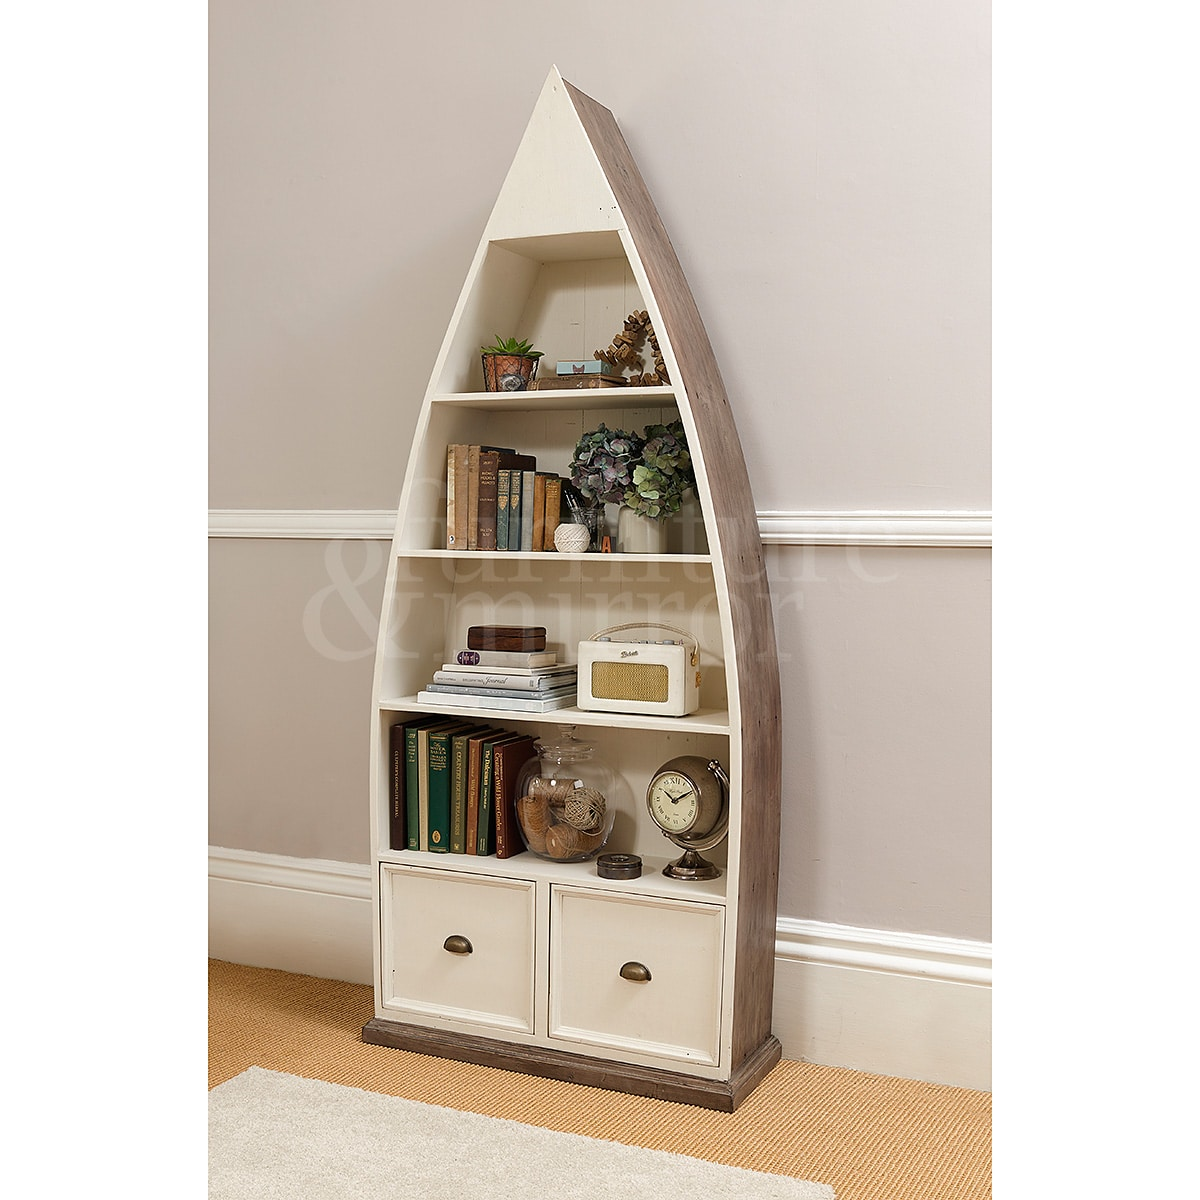 Home cotswold driftwood cotswold driftwood boat bookcase